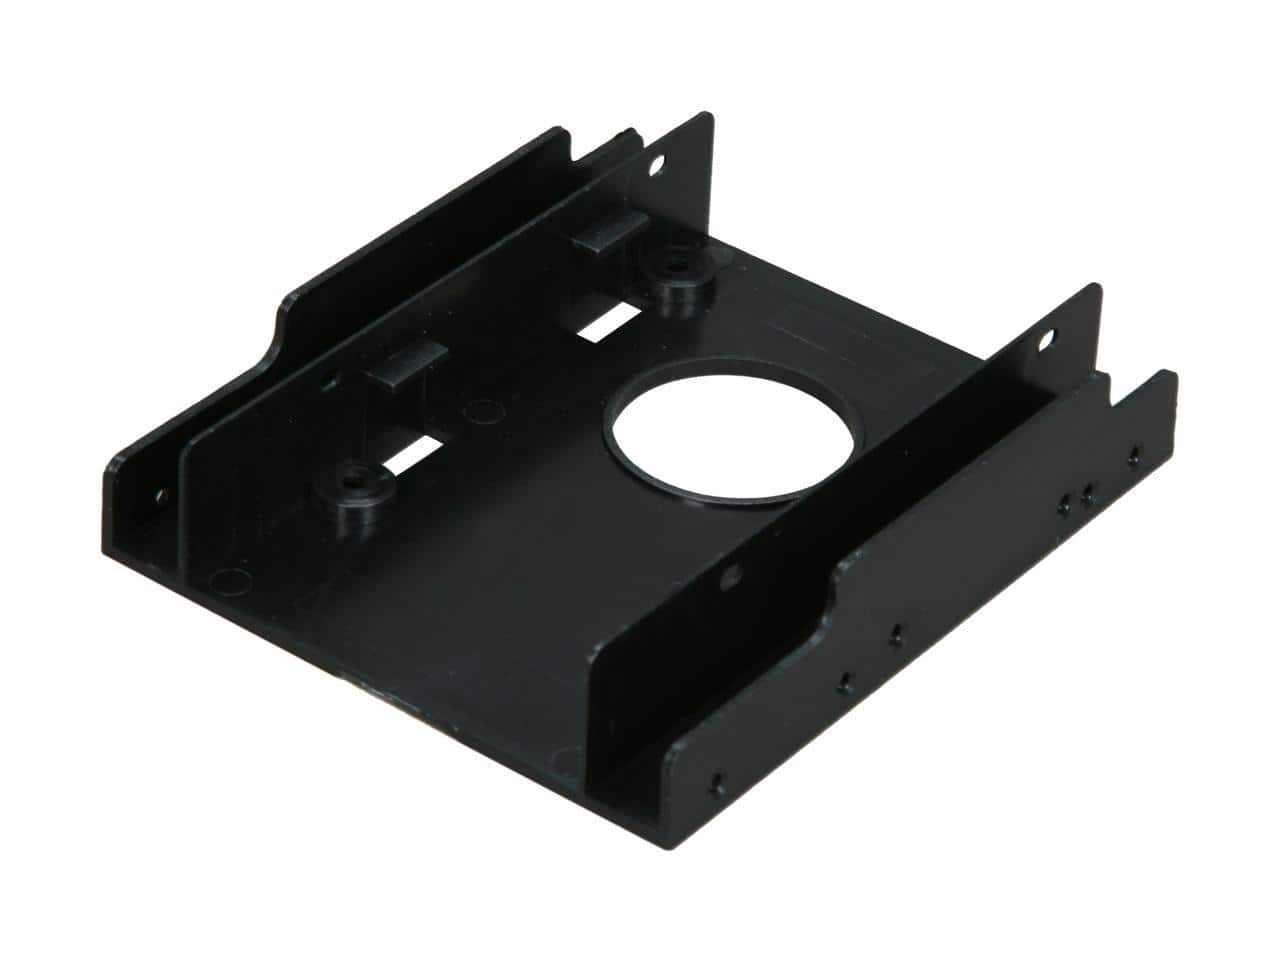 "Rosewill 2.5"" SSD/HDD Mounting Kit for 3.5"" Drive Bay (RX-C200P) Free after Rebate + Free Shipping via Newegg"